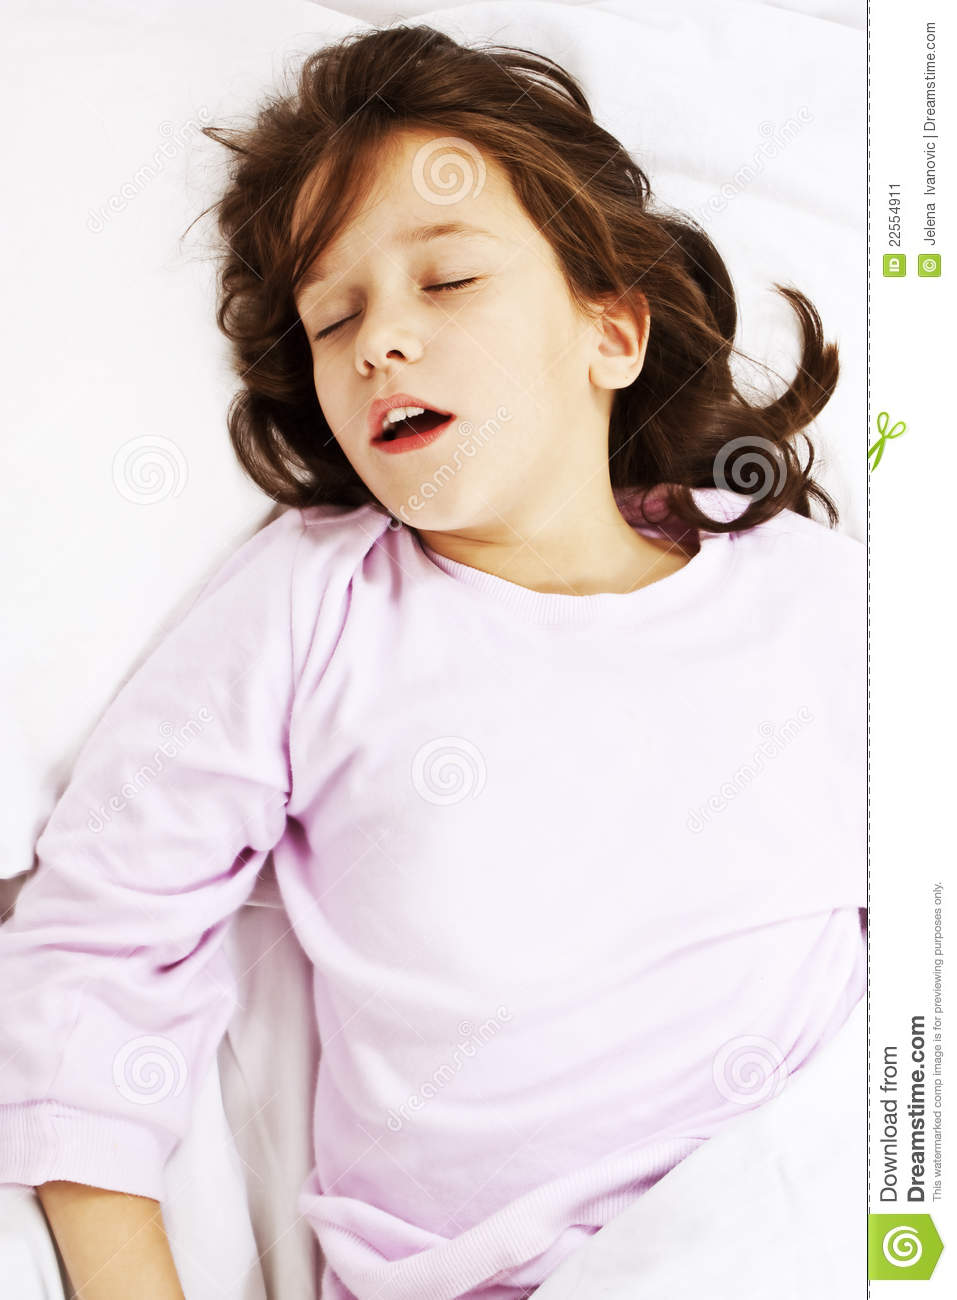 Beautiful Little Girl Sleeping With Her Mouth Open Stock